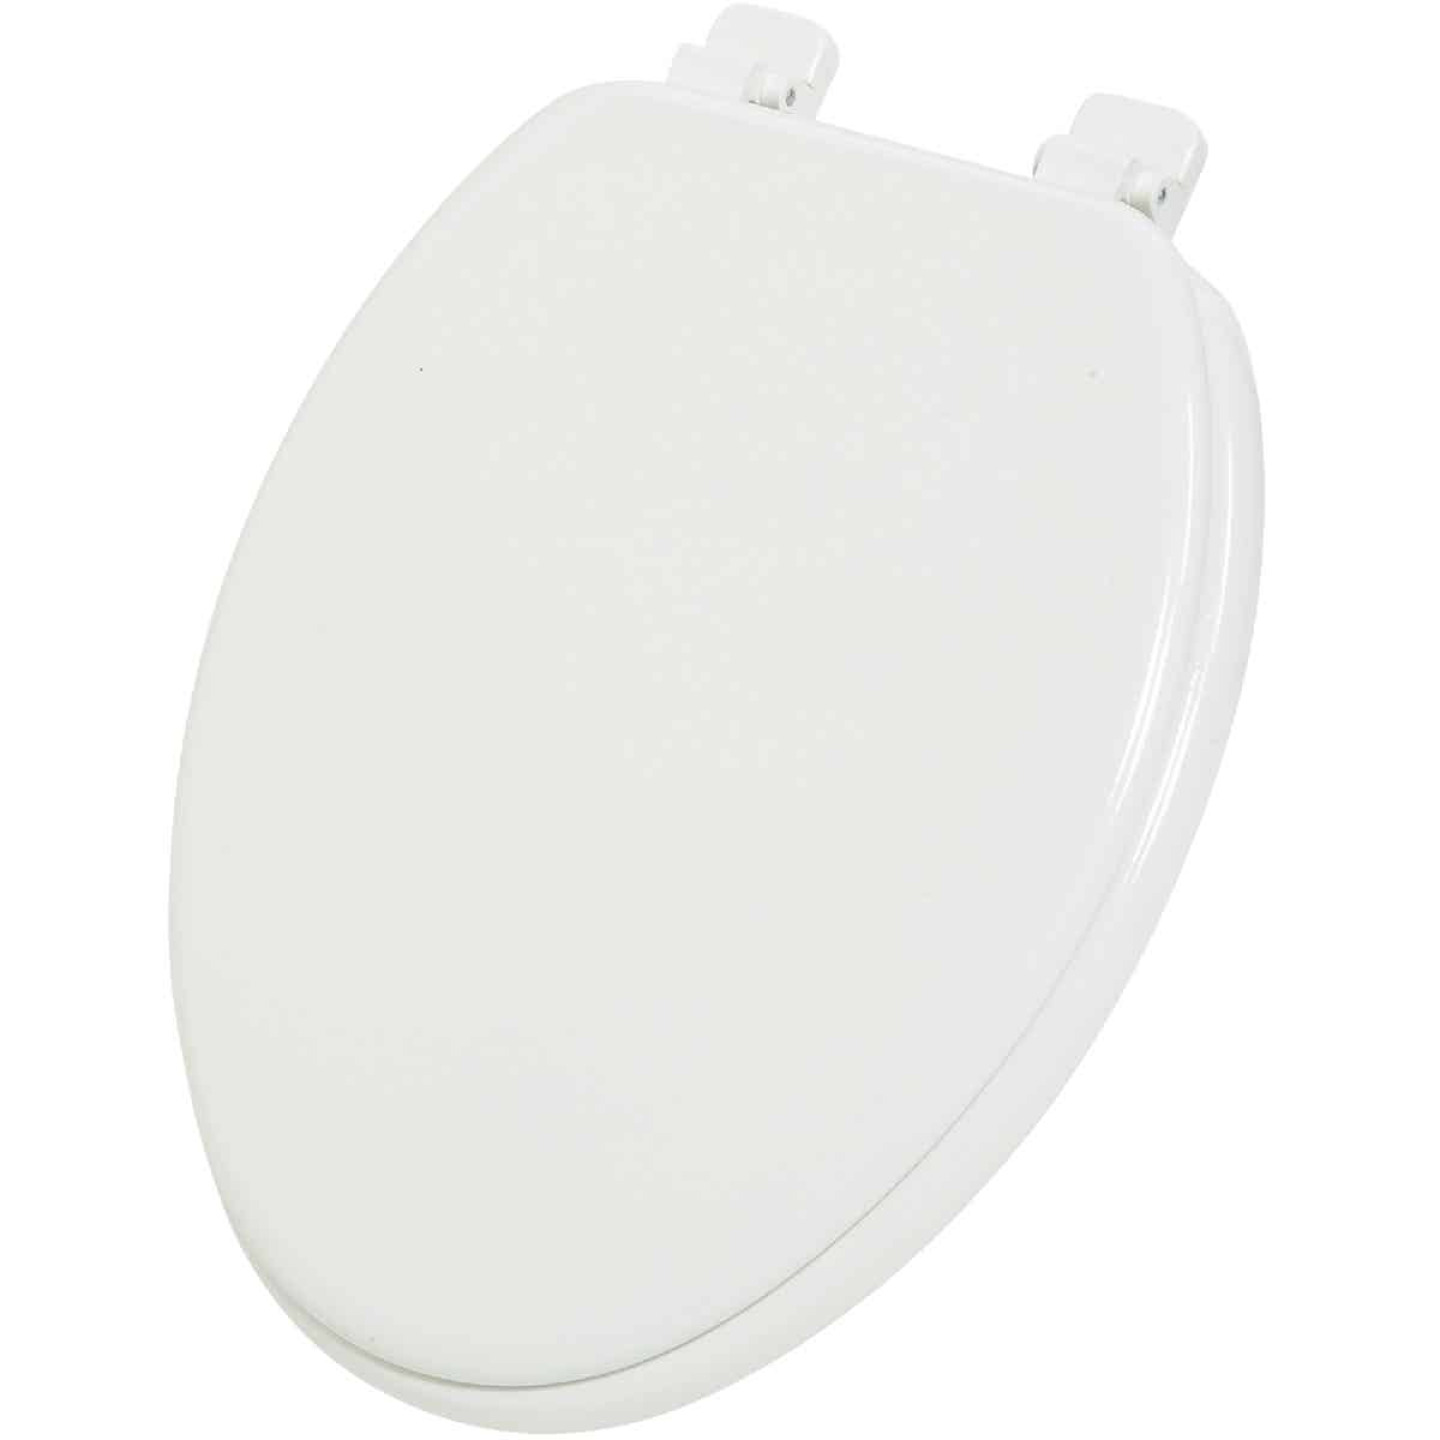 Home Impressions Elongated Closed Front White Wood Toilet Seat Image 1